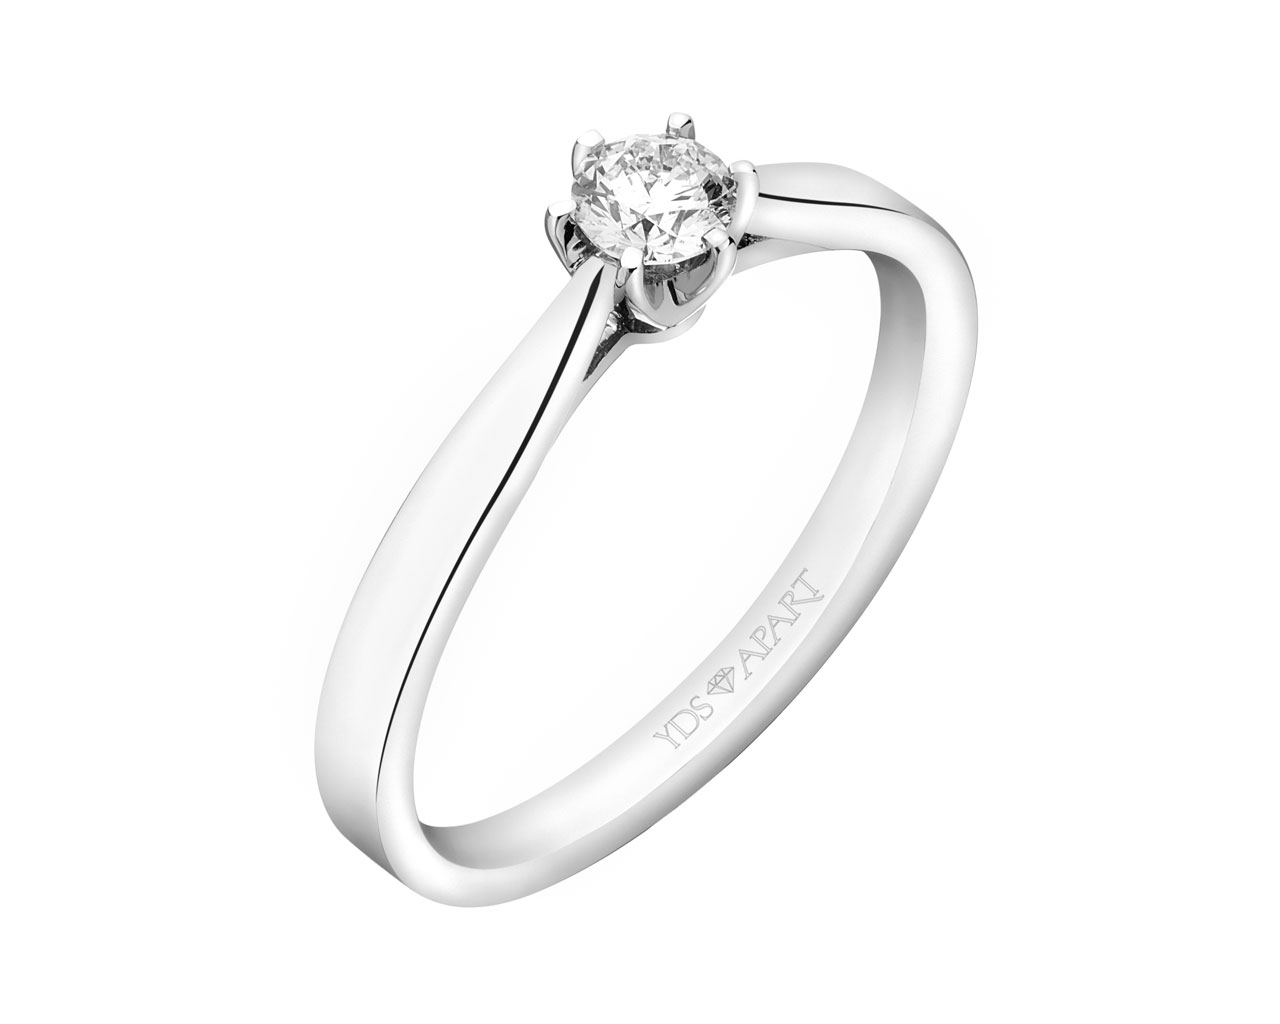 18ct White Gold Ring with Diamond